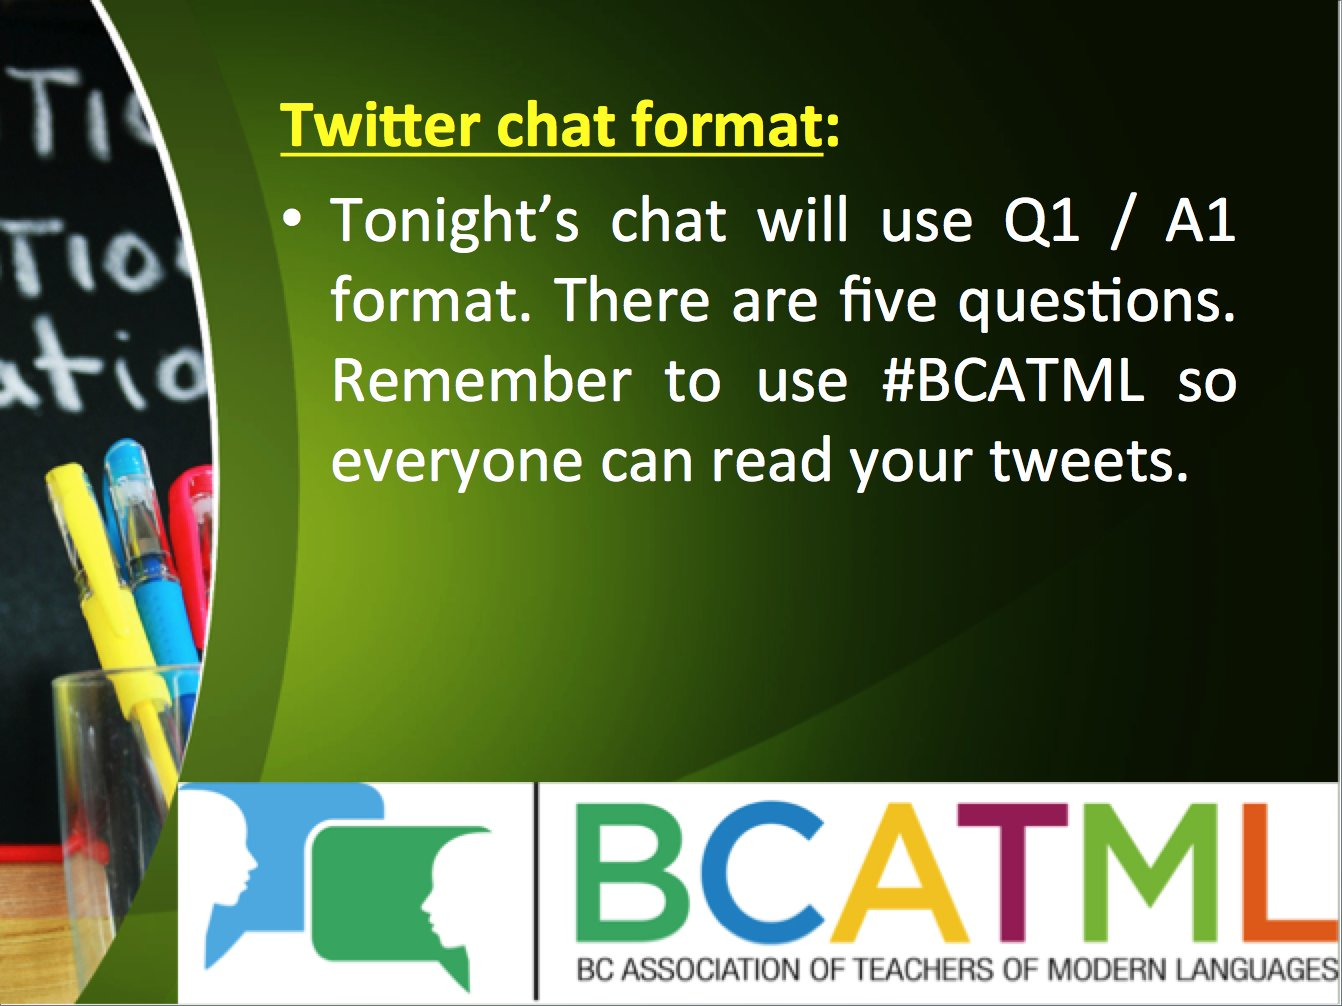 Tonight chat will use Q1/A1 format. We have 5 questions. Be sure to use #BCATML in your tweets so we can all read. https://t.co/MMzkcW4Oyd